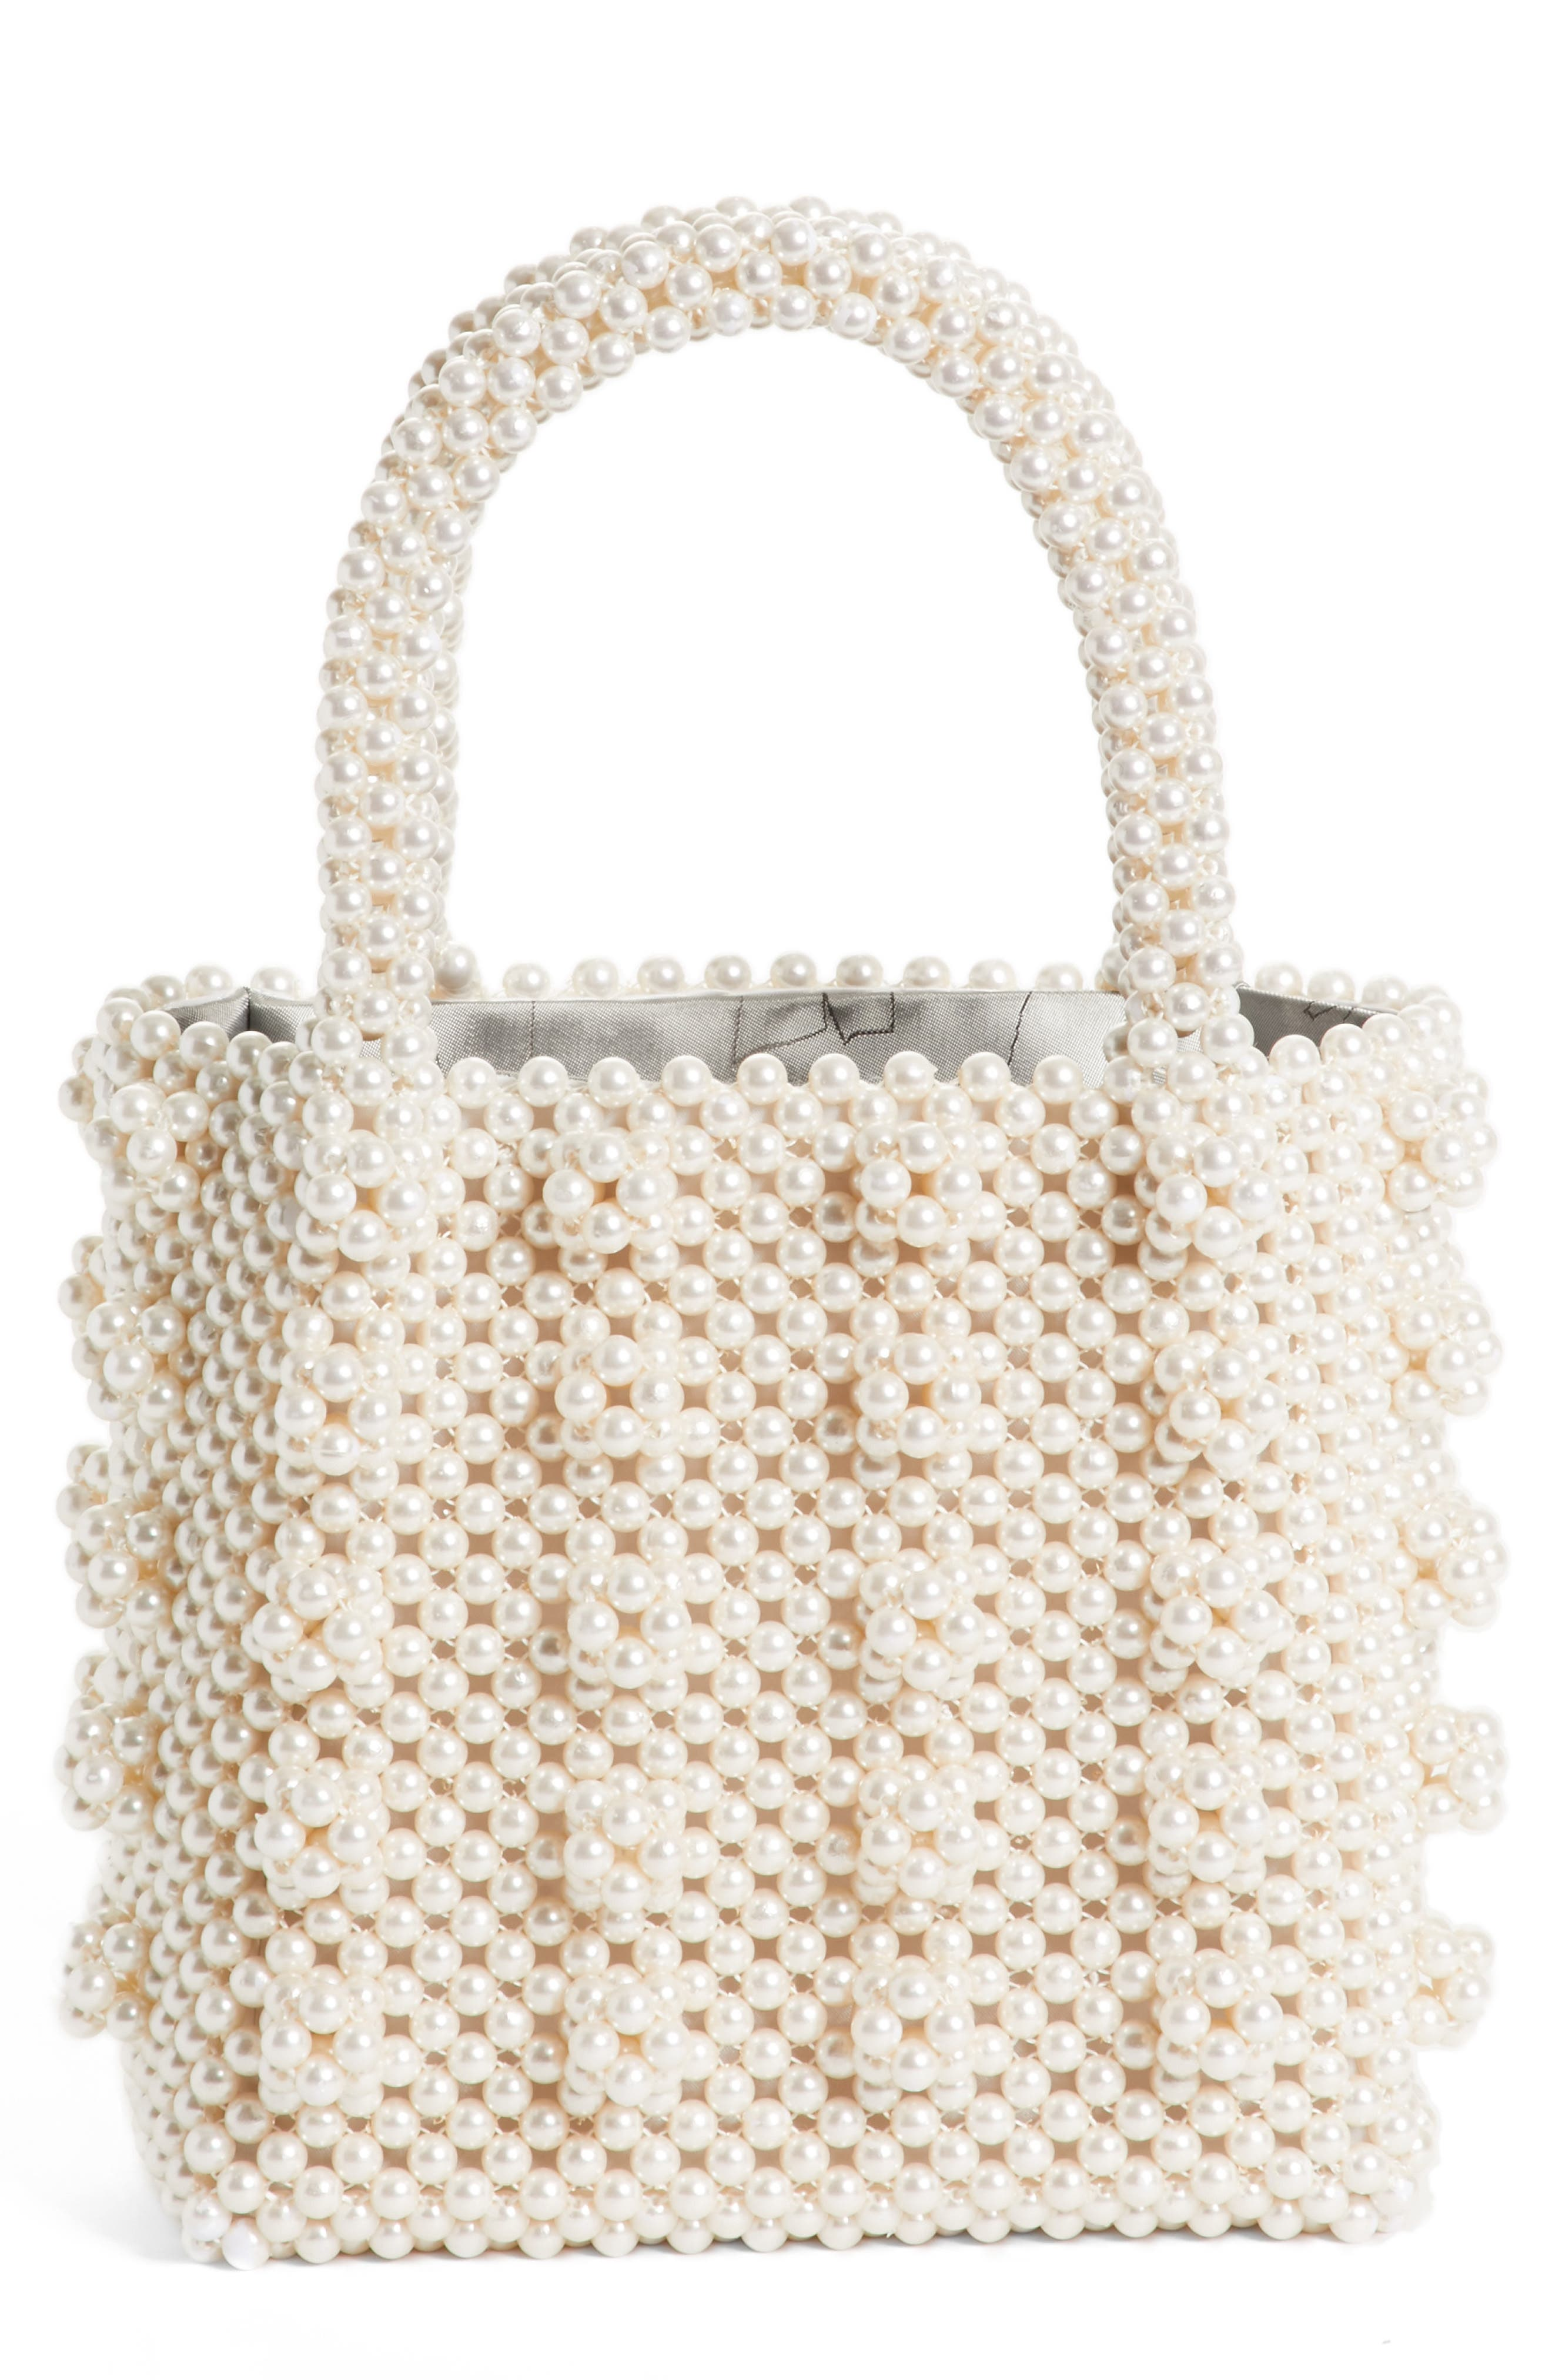 Shrimps Antonia Small Imitation Pearl Beaded Handbag